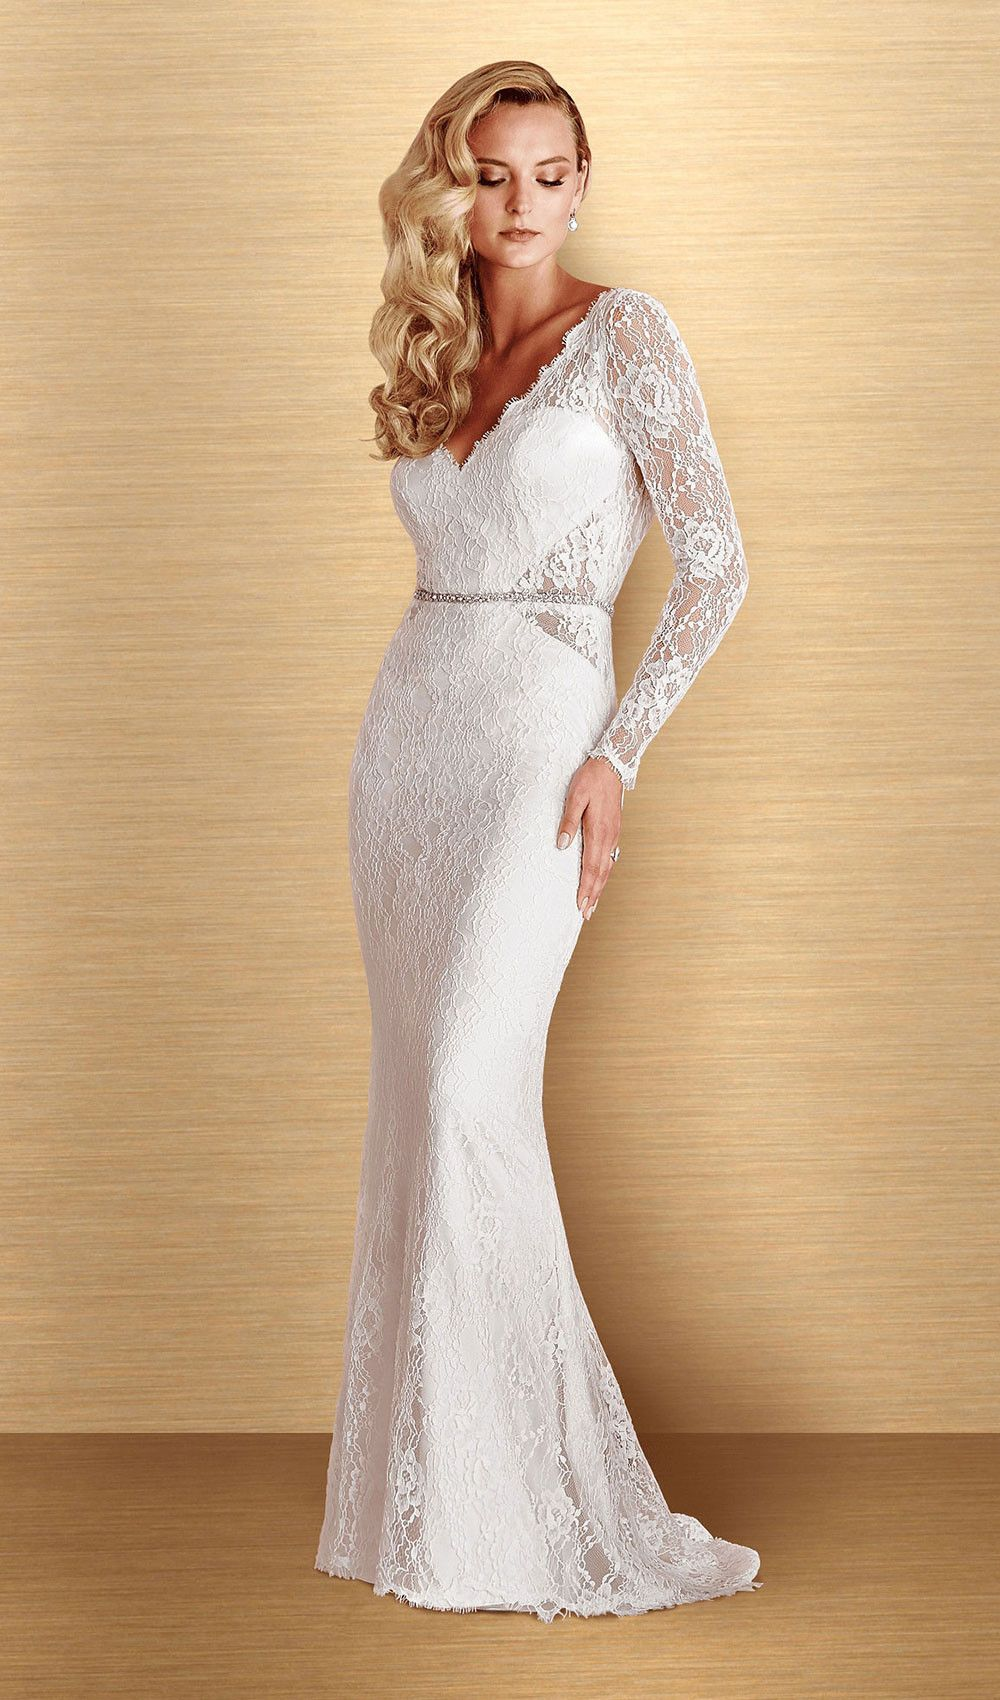 Schaffers In Des Moines Iowa And Scottsdale Arizona Carries Paloma Blanca